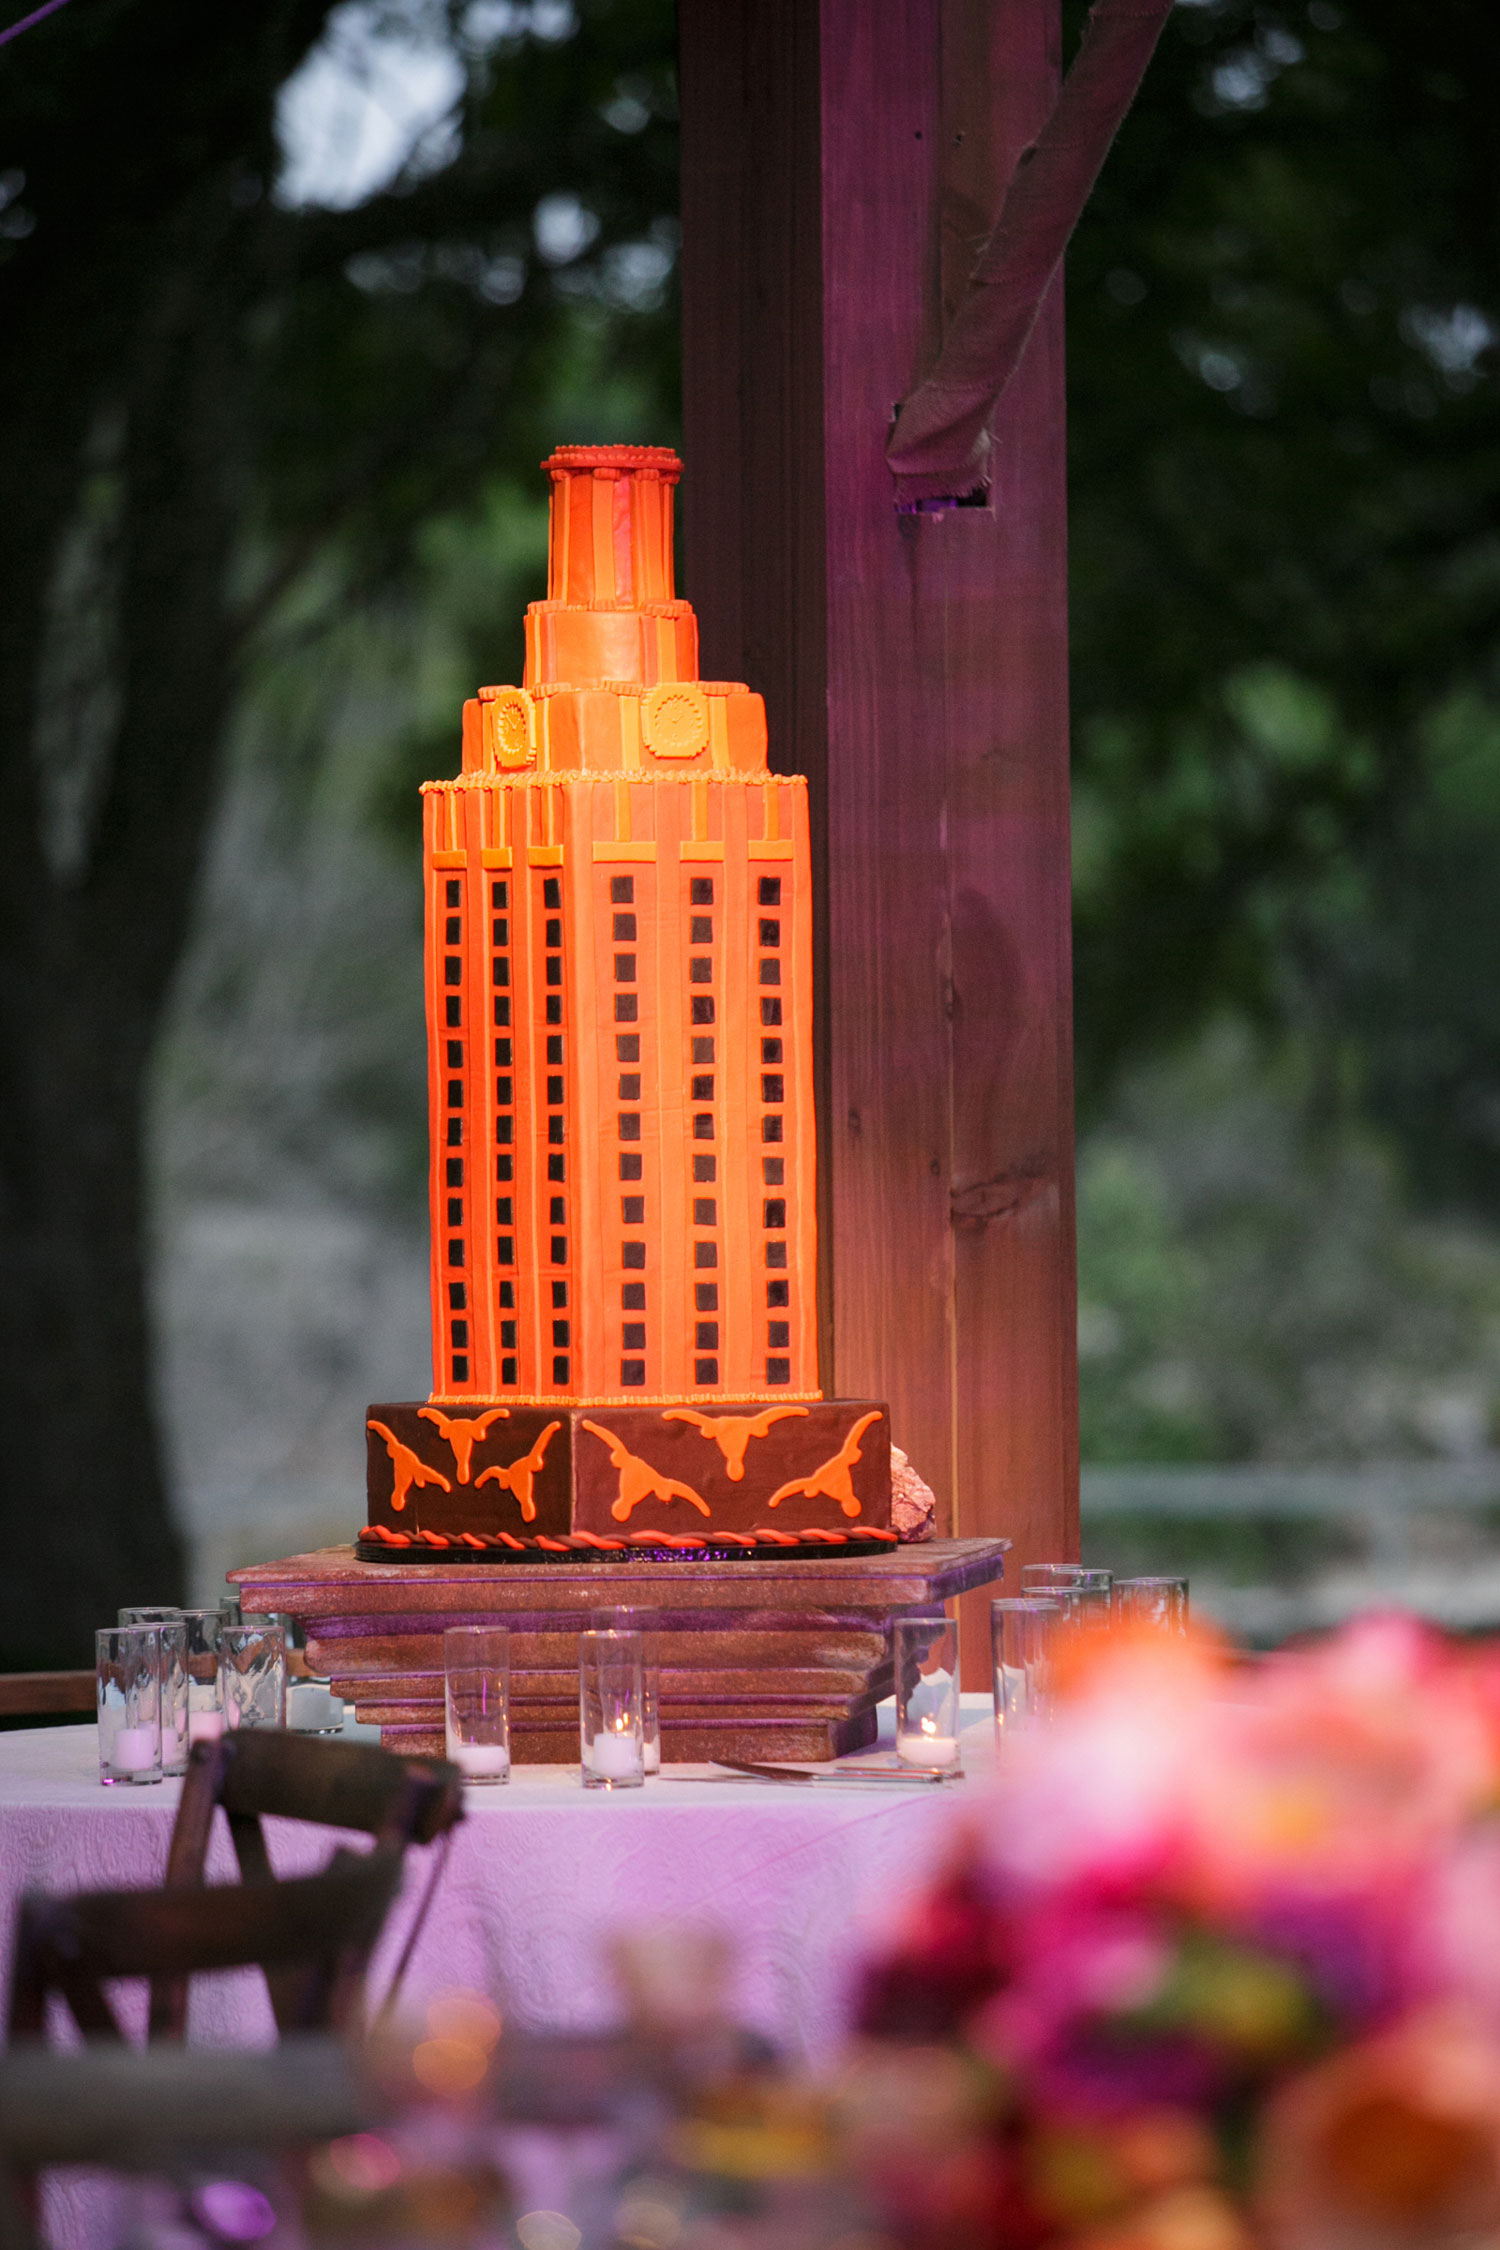 University of Texas wedding cake groom's cake alma mater texas wedding